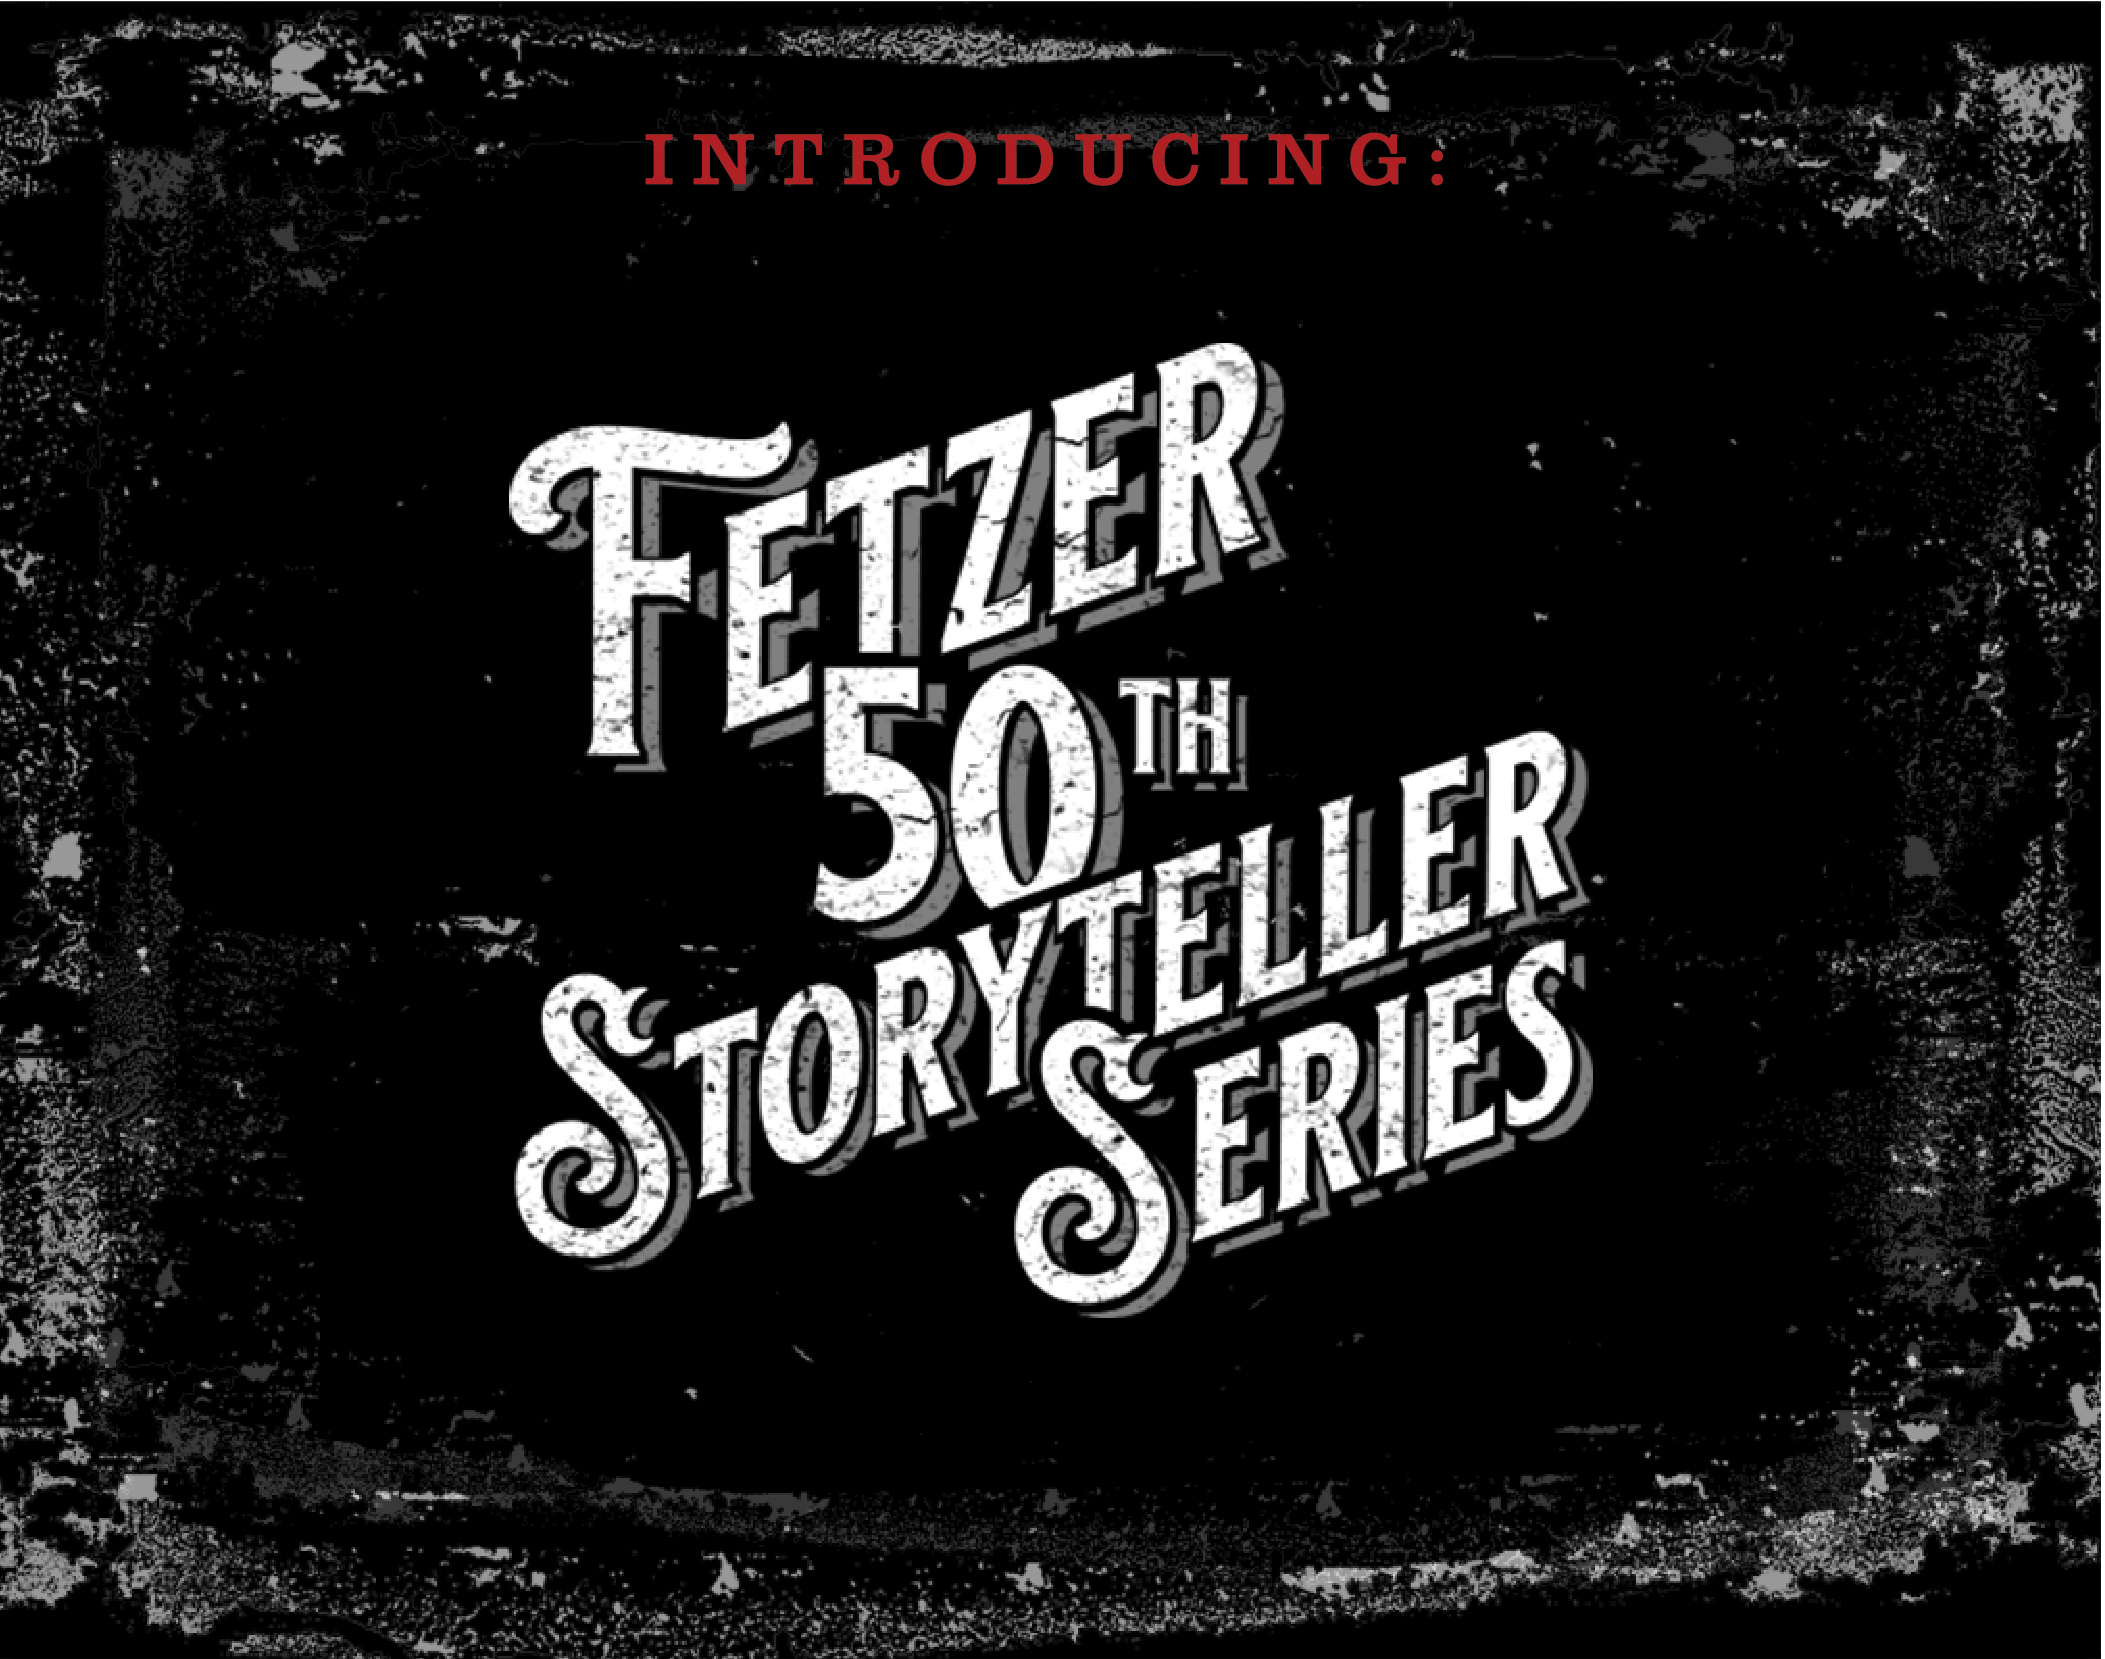 See our Storyteller Series - highlighting wine industry insiders from Fetzer past and present - at www.fetzer50th.com